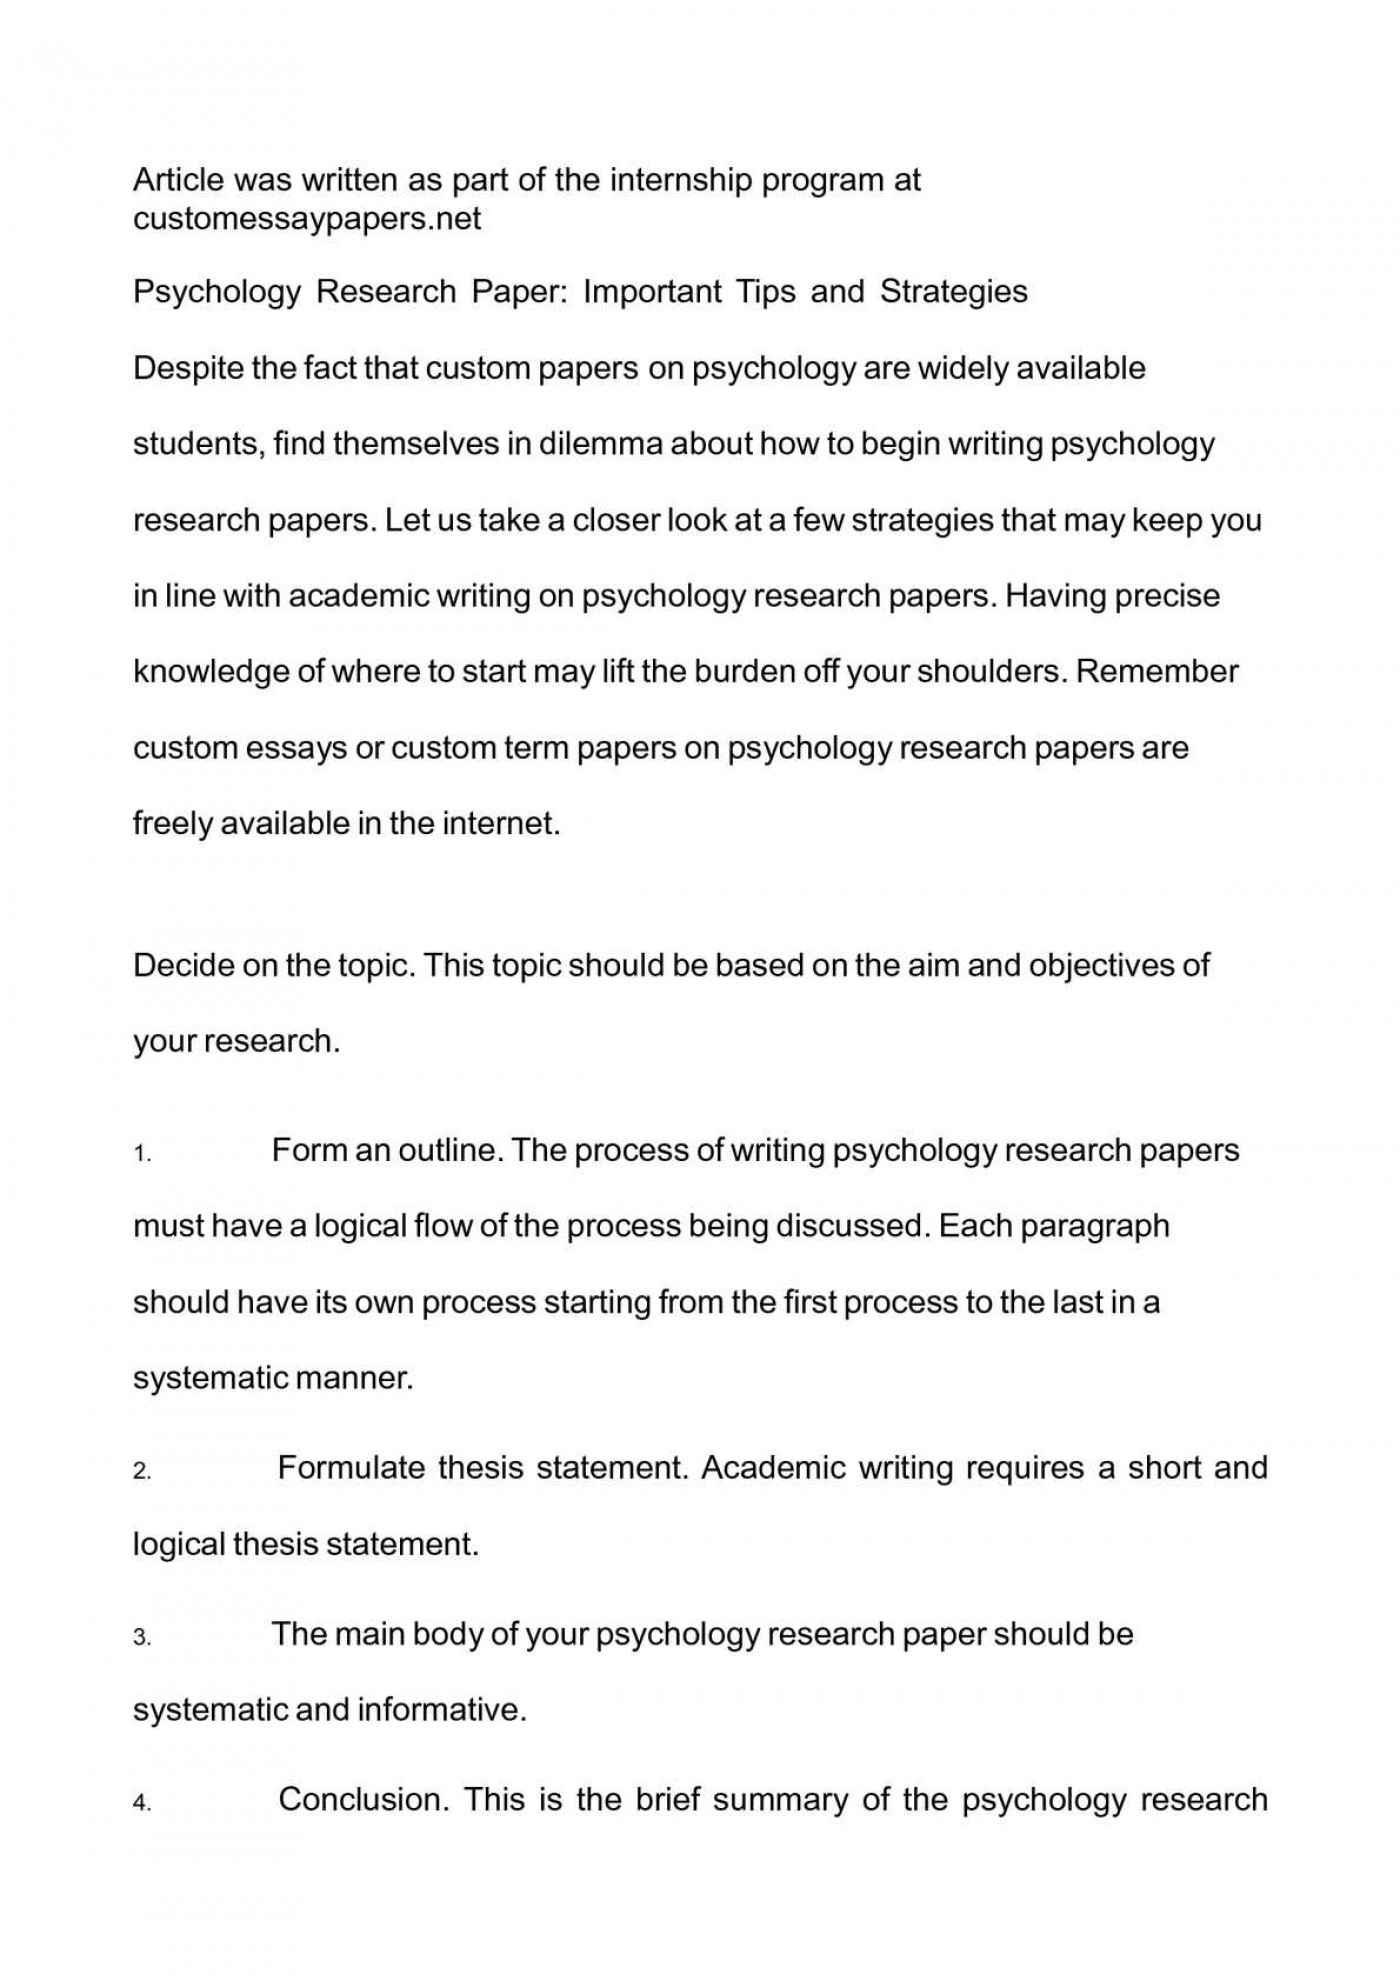 019 Psychology Research Paper Topics Striking On Dreams Depression For High School Students 1400